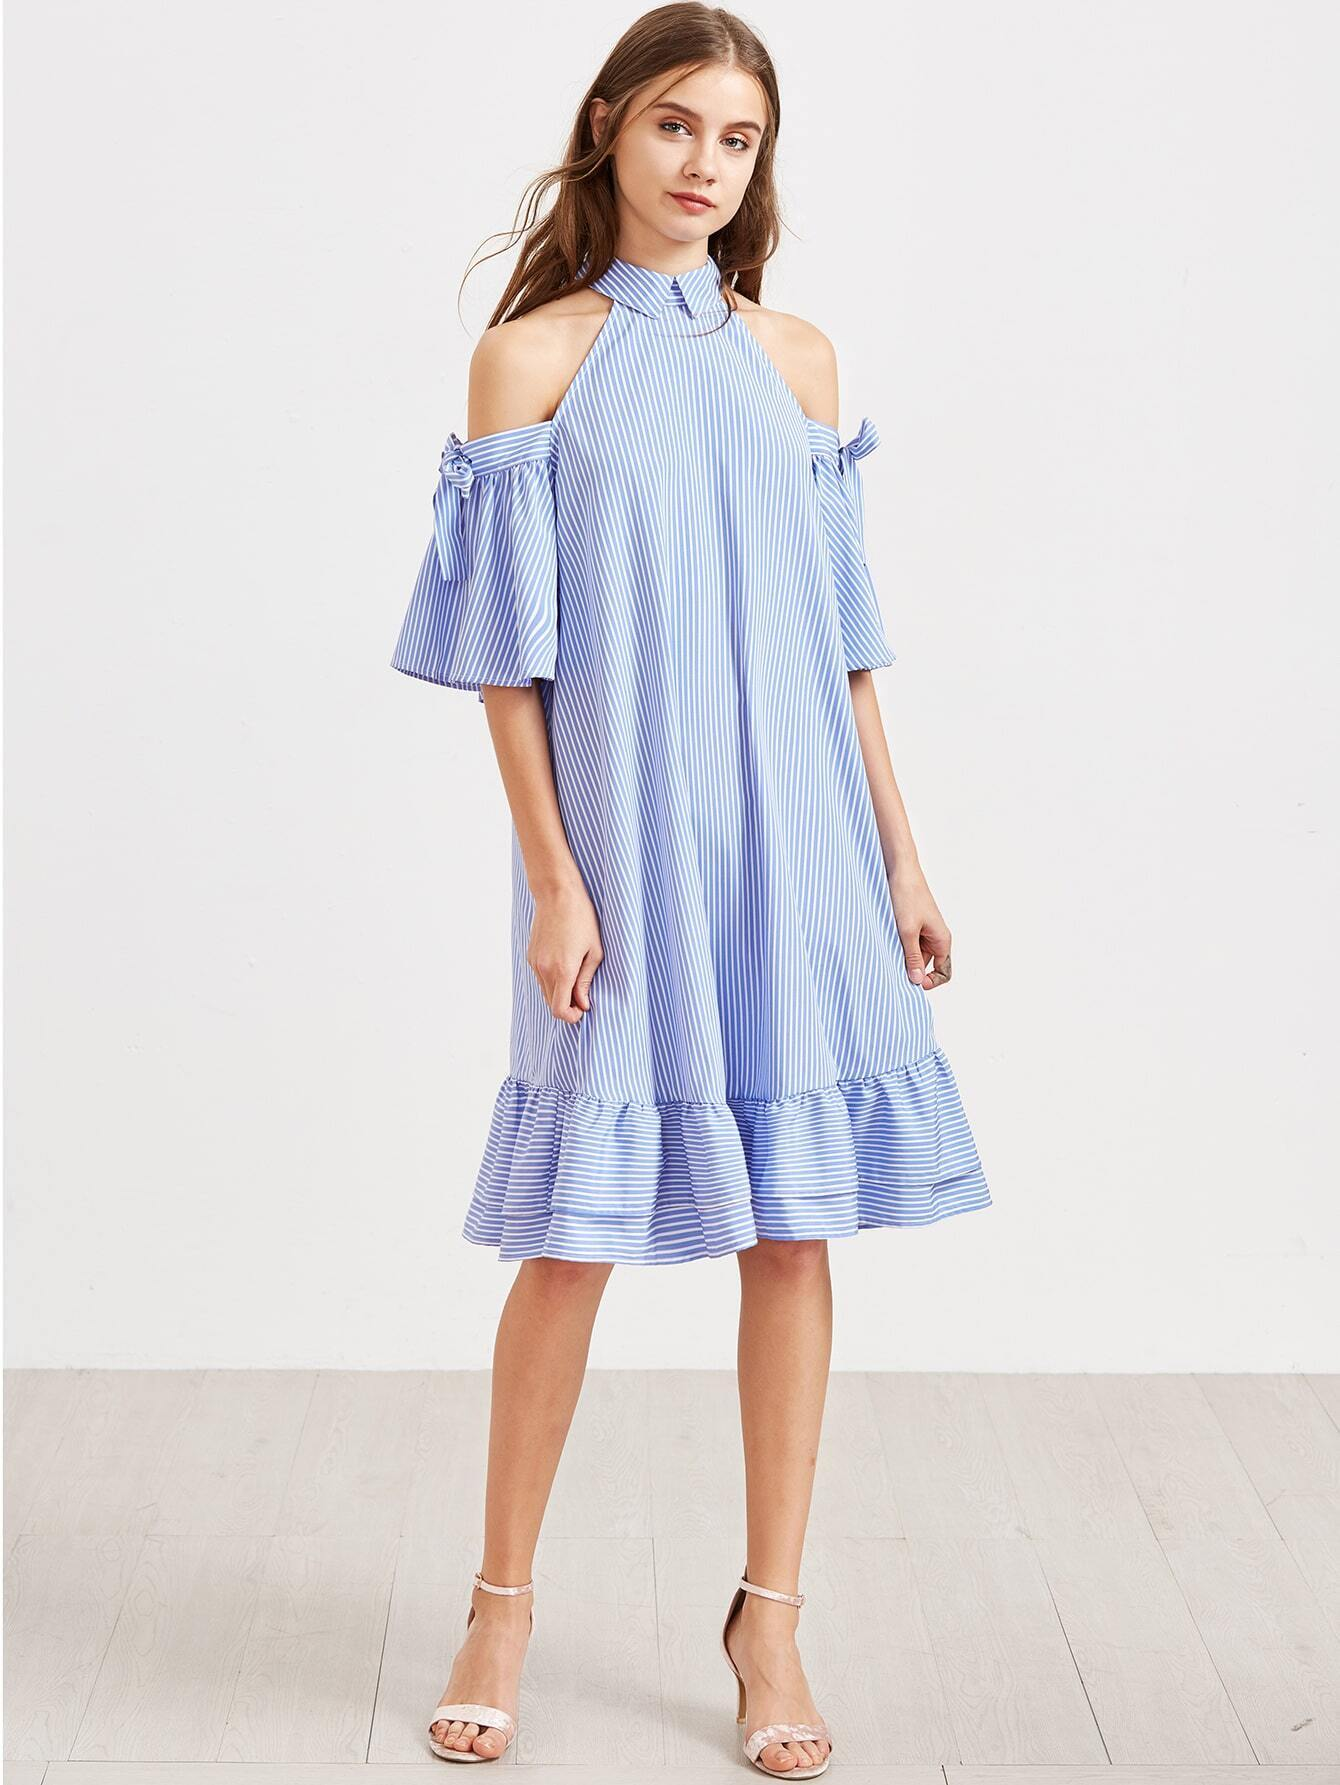 cba9840fd6 Blue Striped Cold Shoulder Tie Sleeve Ruffle Hem Dress EmmaCloth ...